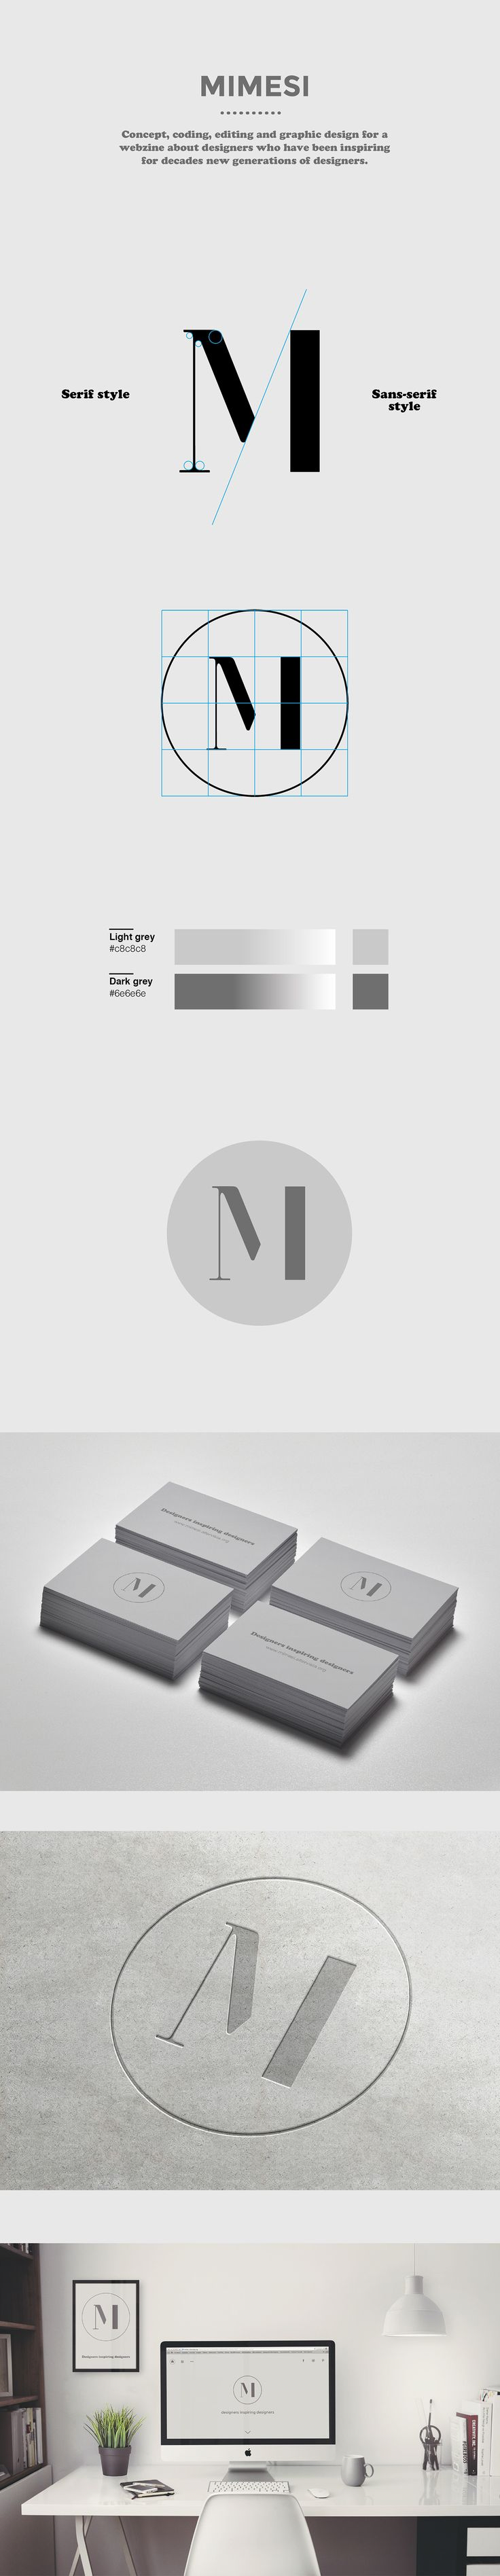 Mimesi - webzine for designers on Behance. #logo #design #grid #construction #M #Mimesi